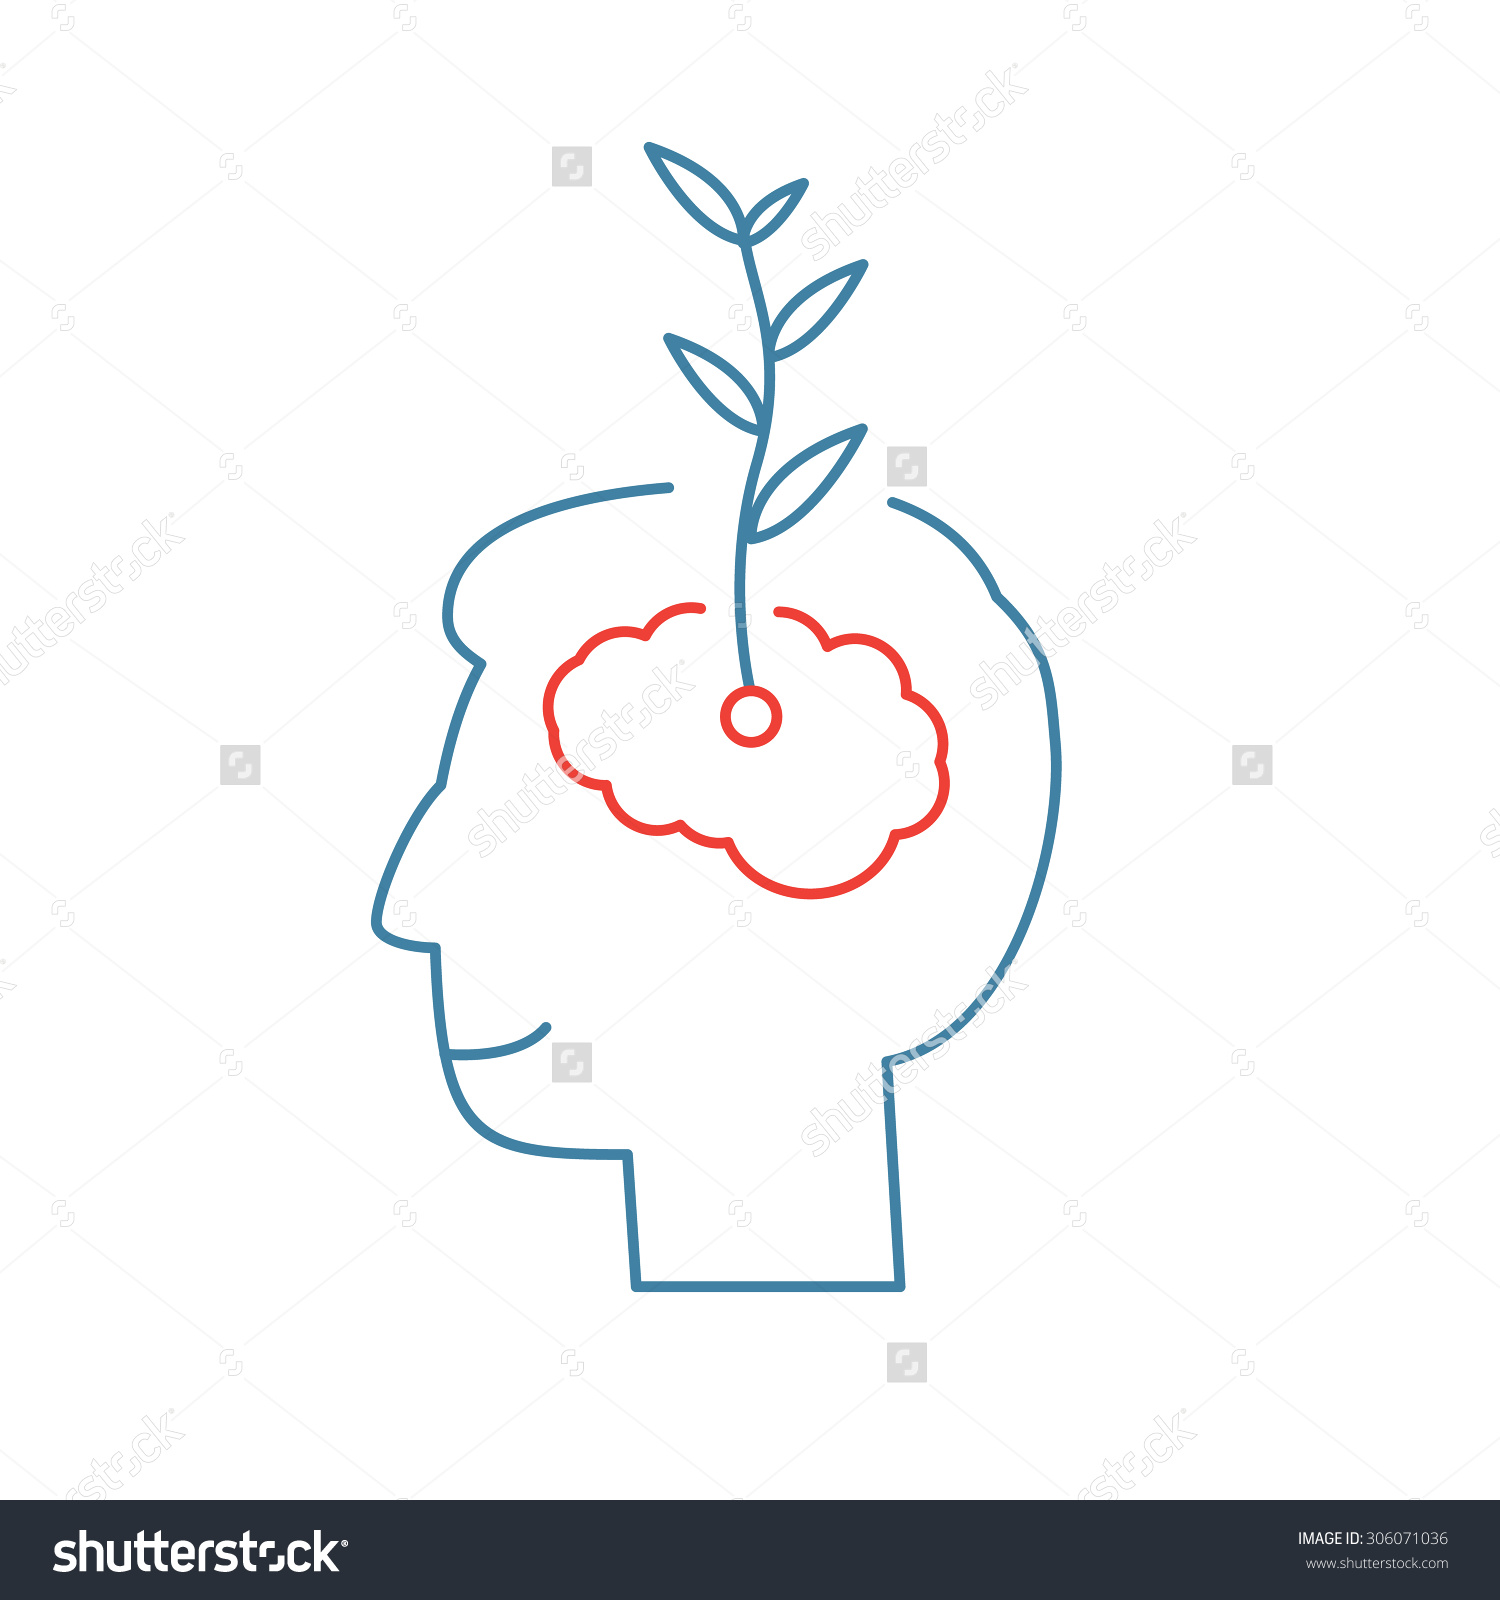 Vector Growth Mindset Skills Icon Growing Plant From The Brain.